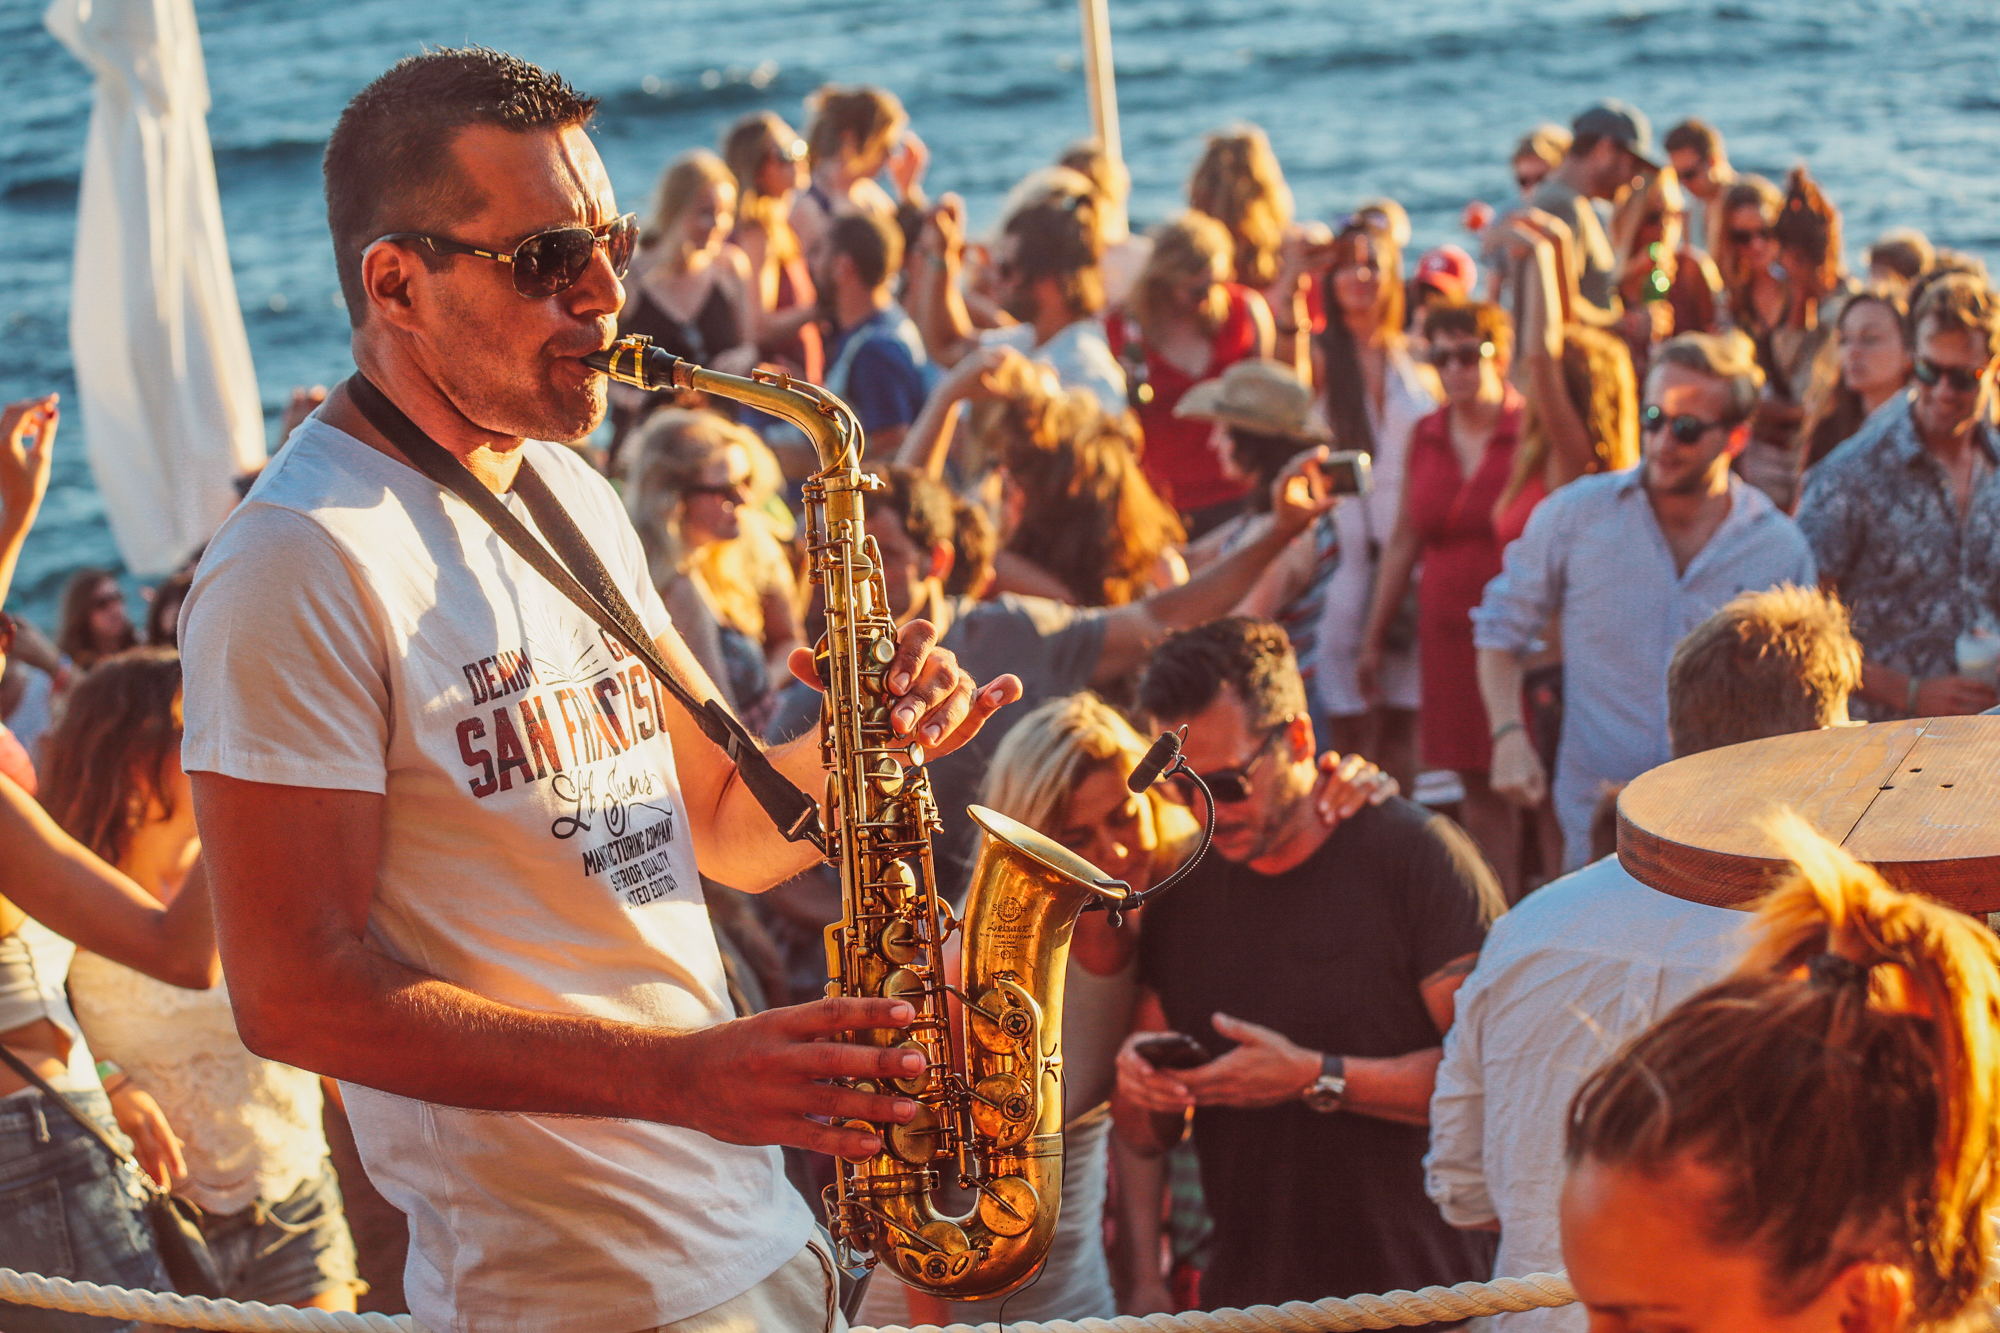 Sharpen your Party Senses for the Iconic Hvar Party Experience